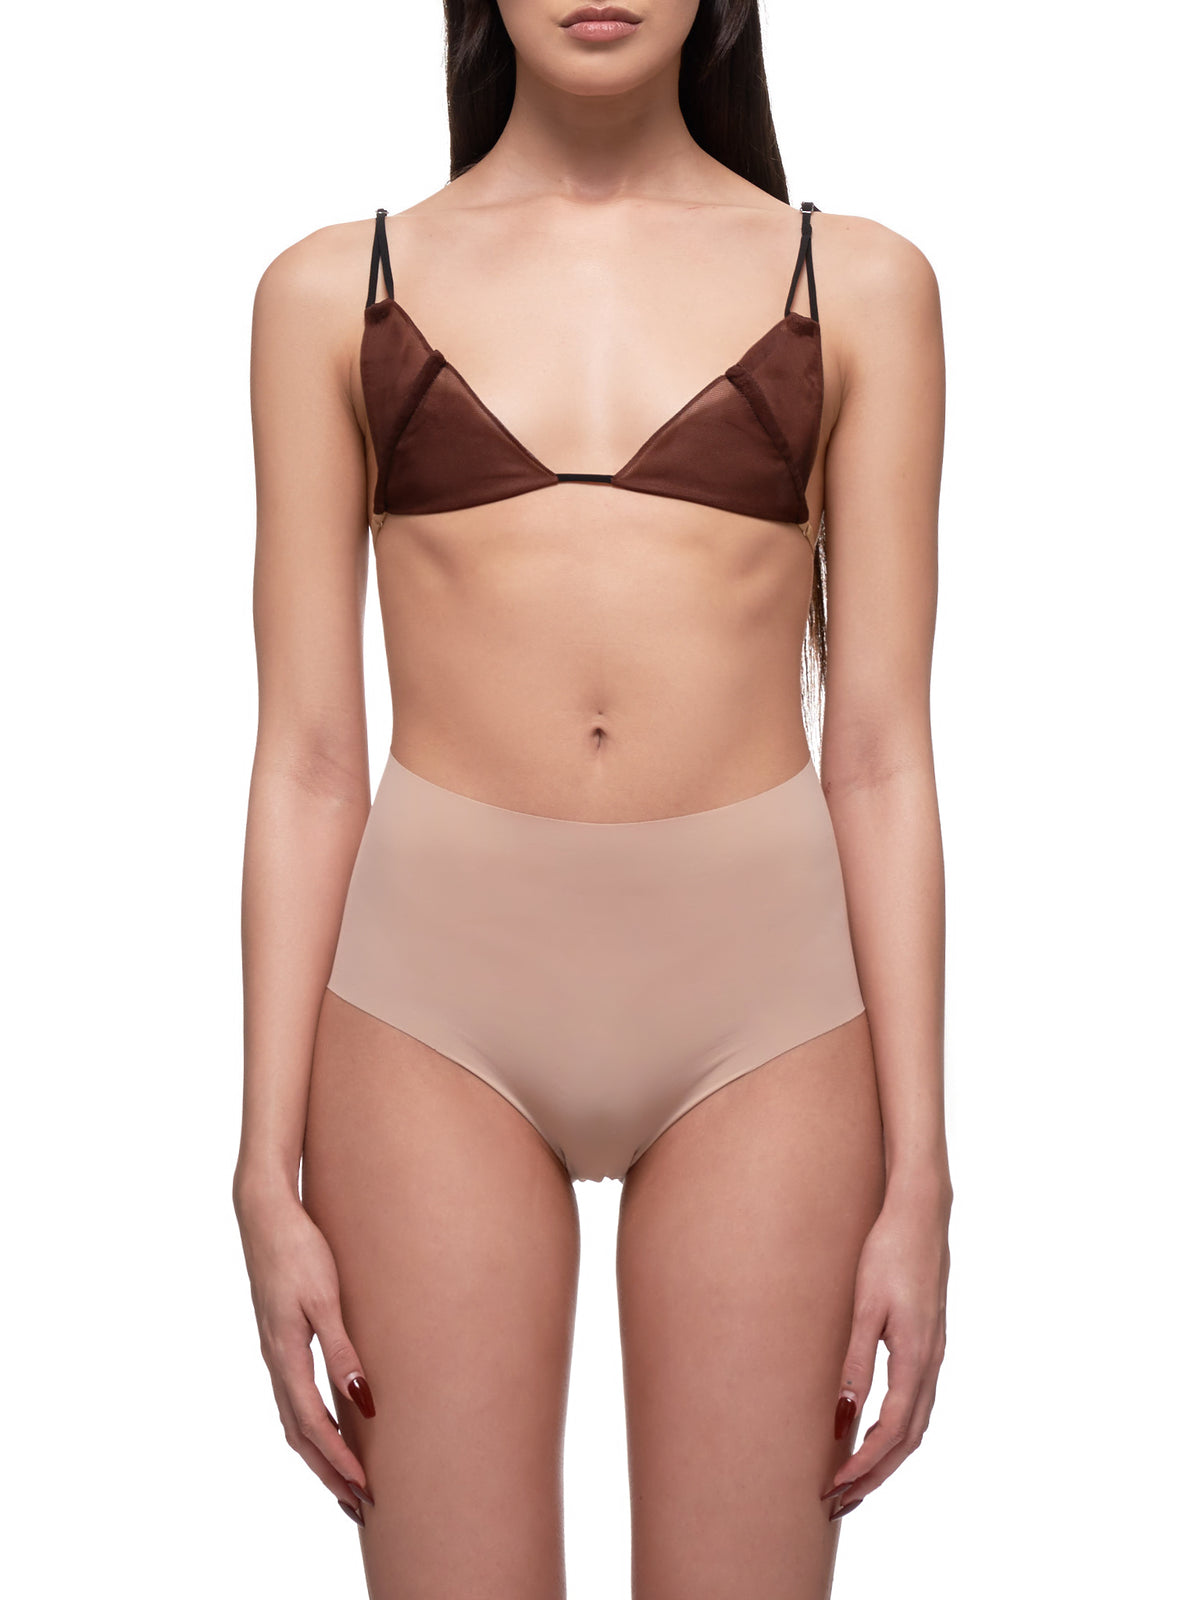 Deconstructed Bralette (0006-BLACK-BROWN)